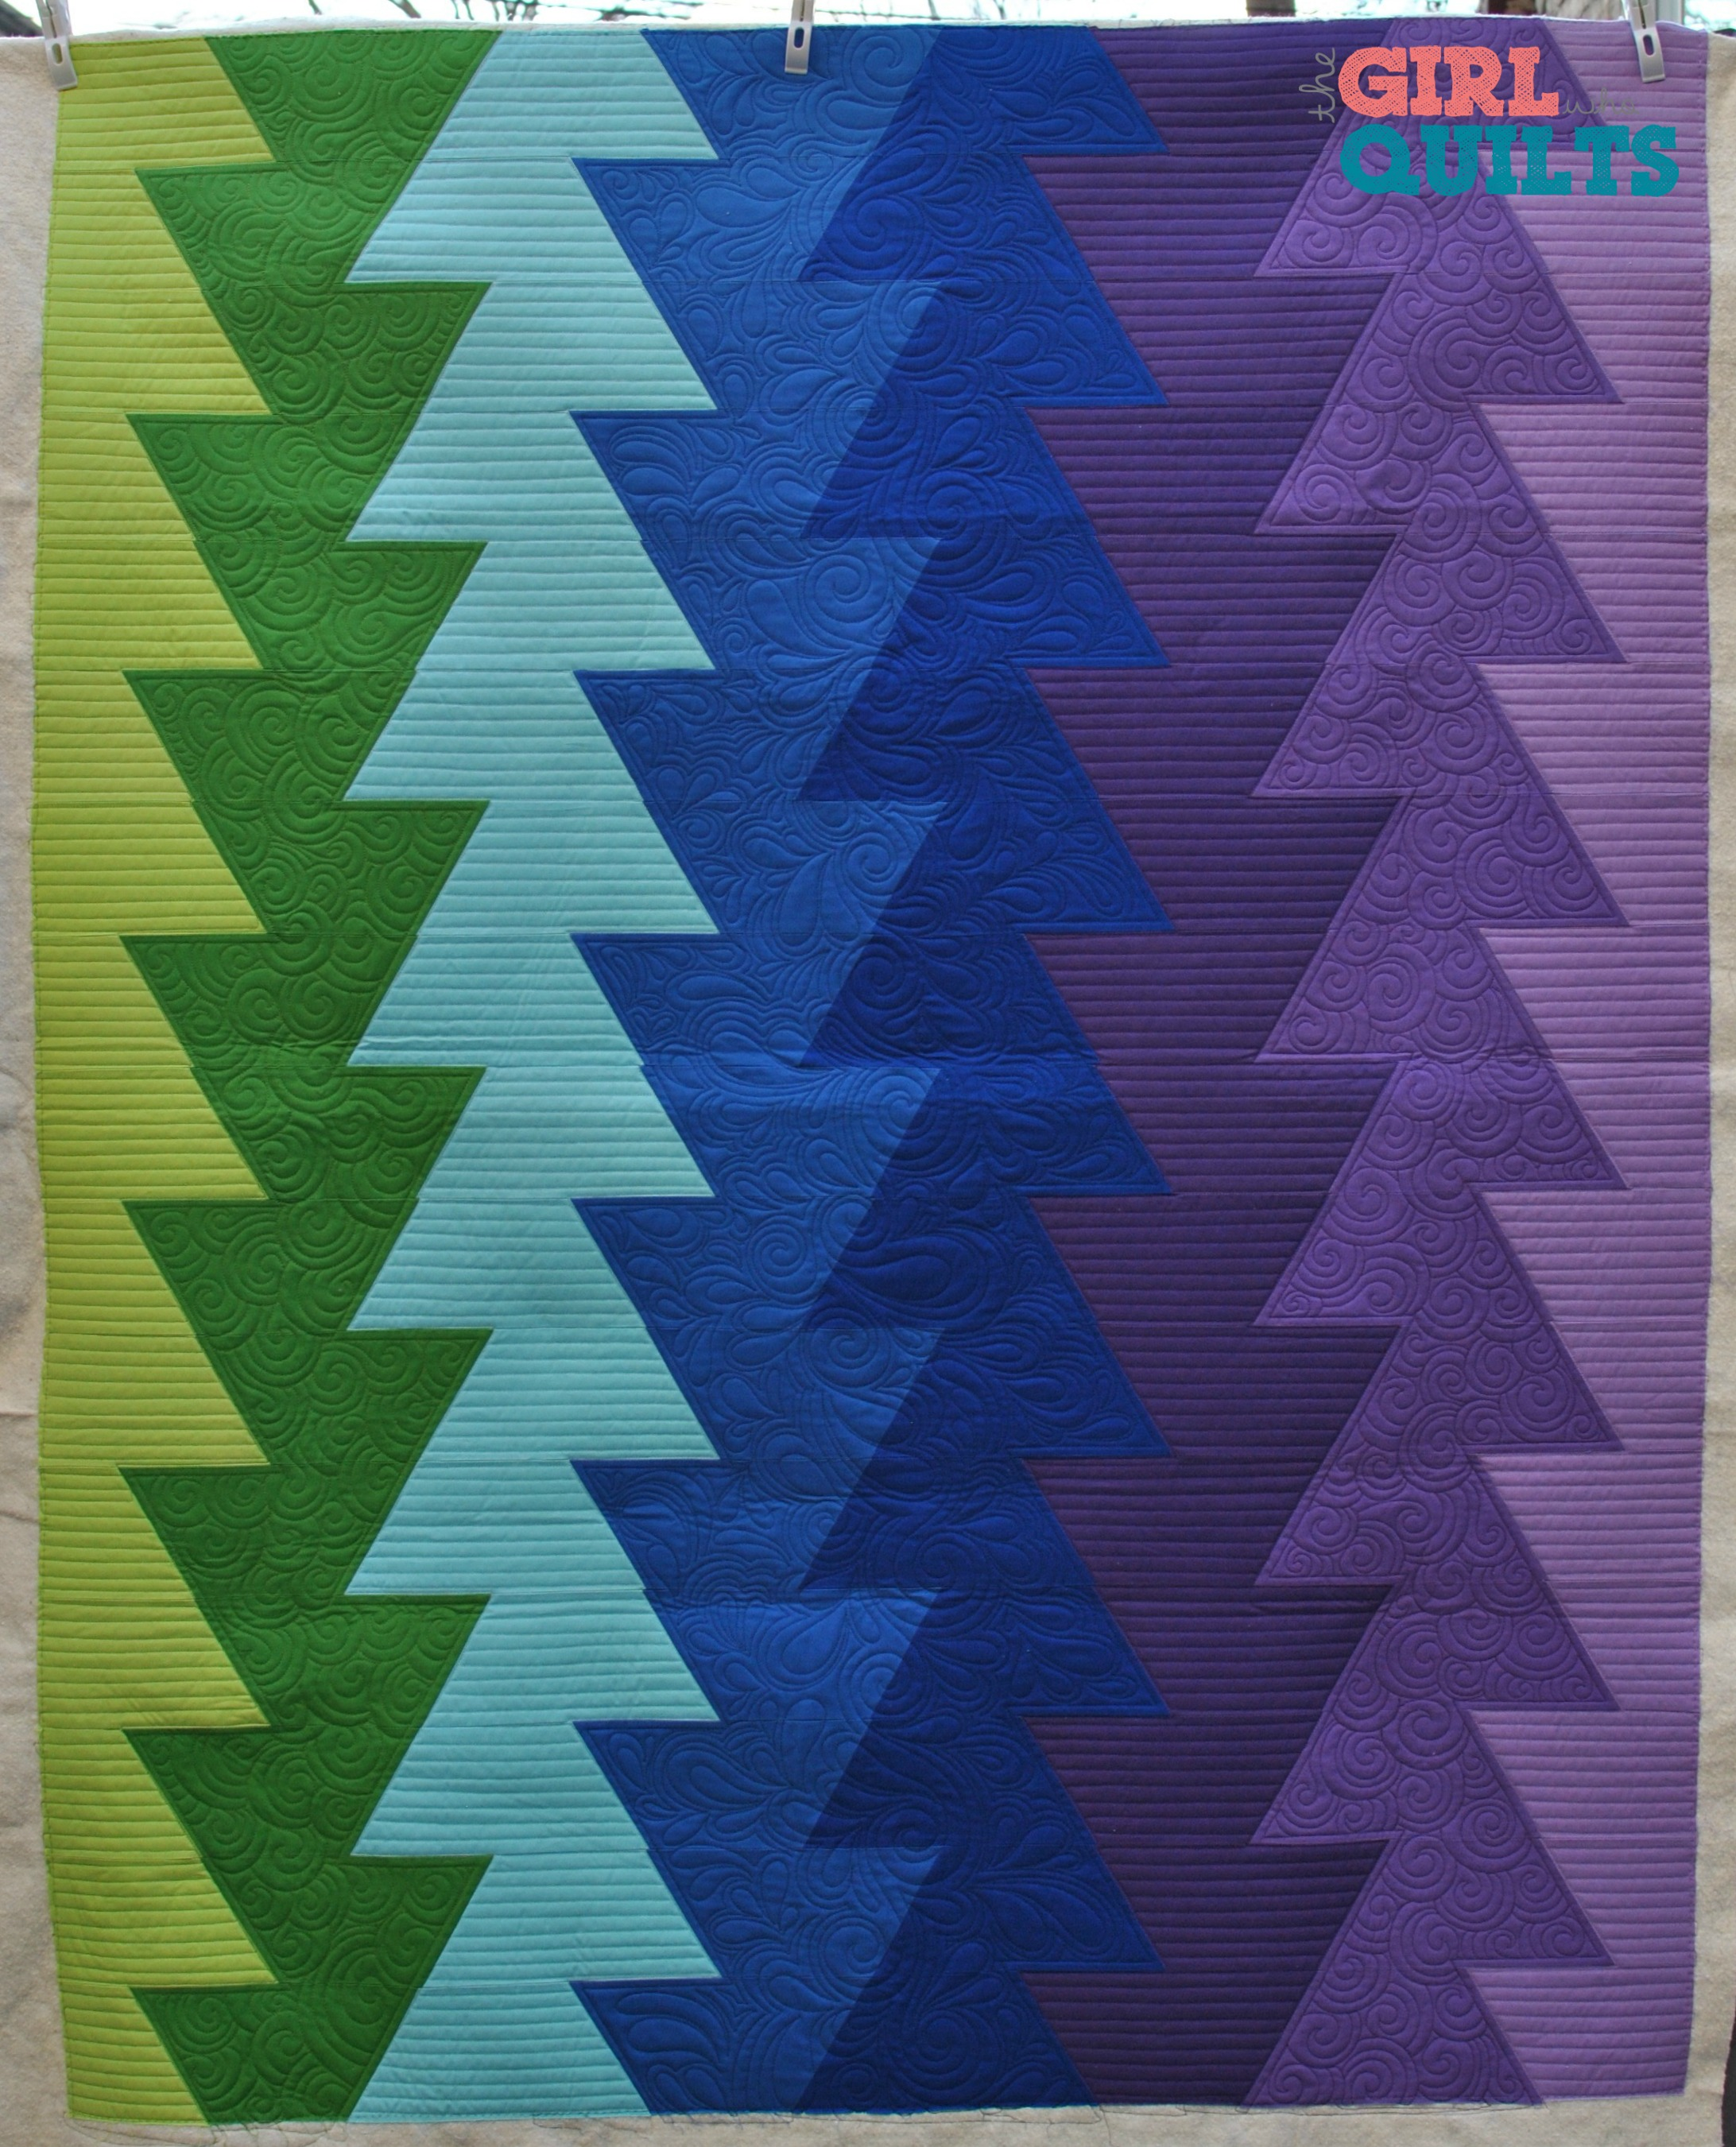 Northern Lights - Pattern by JayBird Quilts, Pieced by my mom, quilted by The Girl Who Quilts